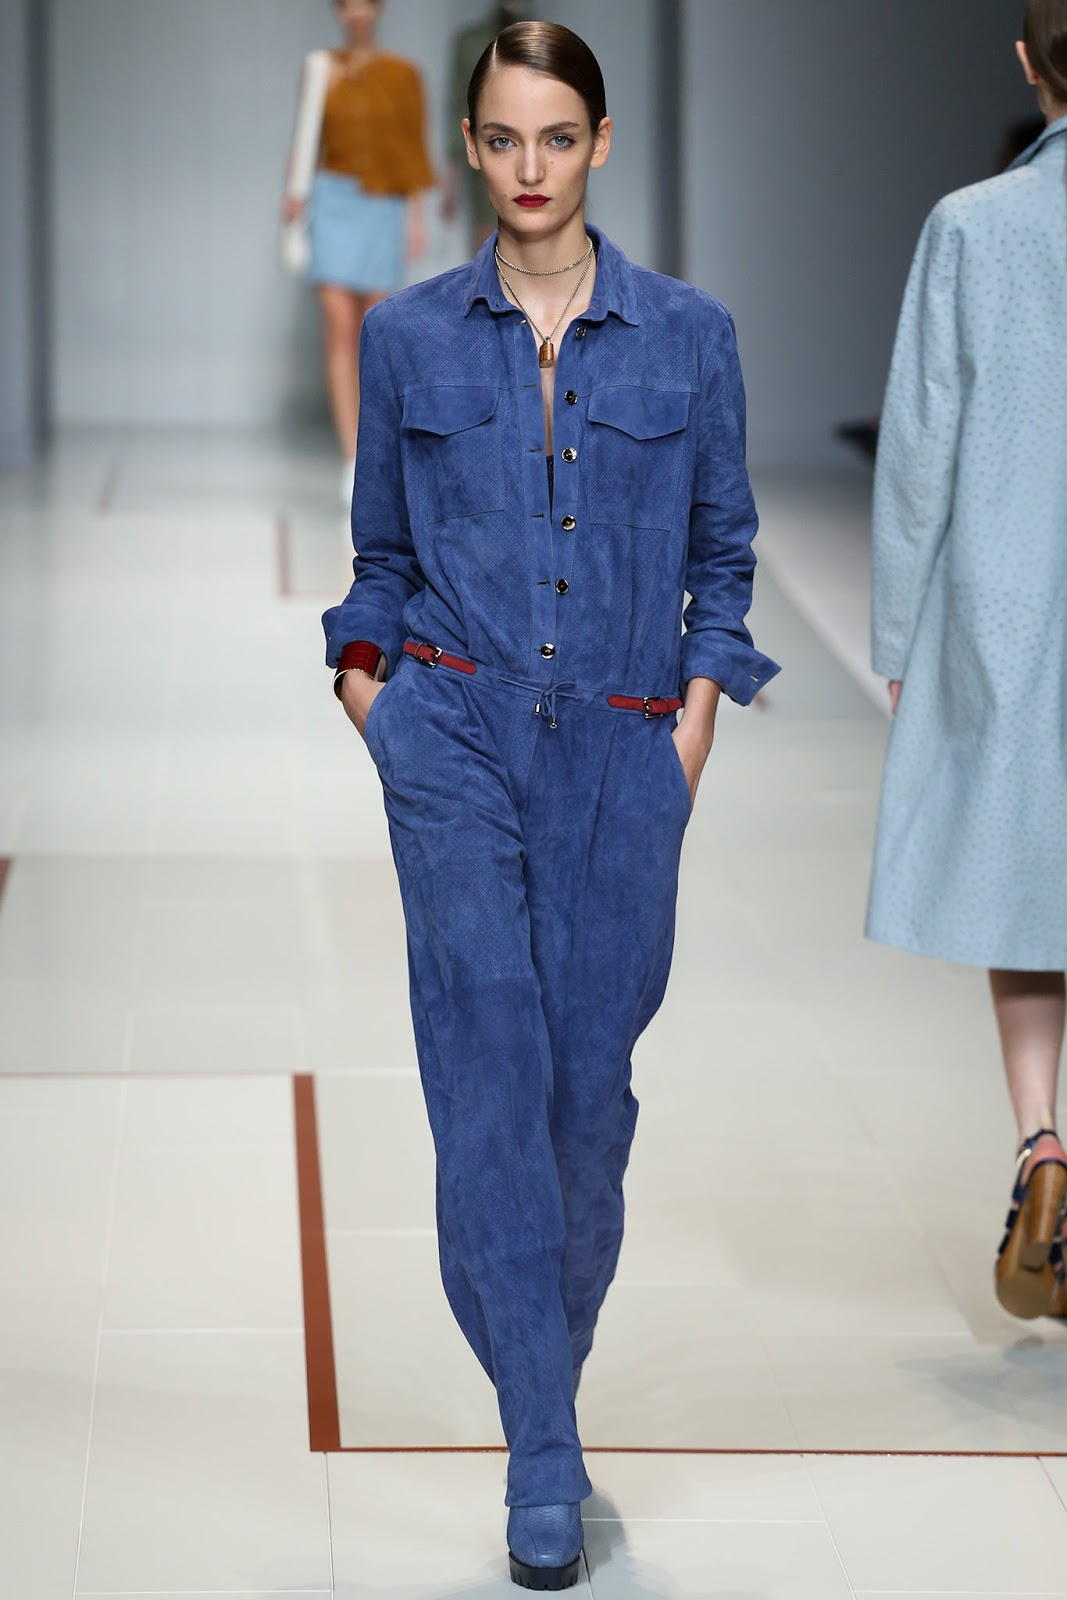 suede on the Spring/Summer 2015 runway at Porsche design, Bottega veneta, Loewe, Jill Stuart, Altuzarra, Chloe, Gucci, Ralph Lauren, Valentino, Michael Kors, Trussardi, Derek Lam via fashioned by love